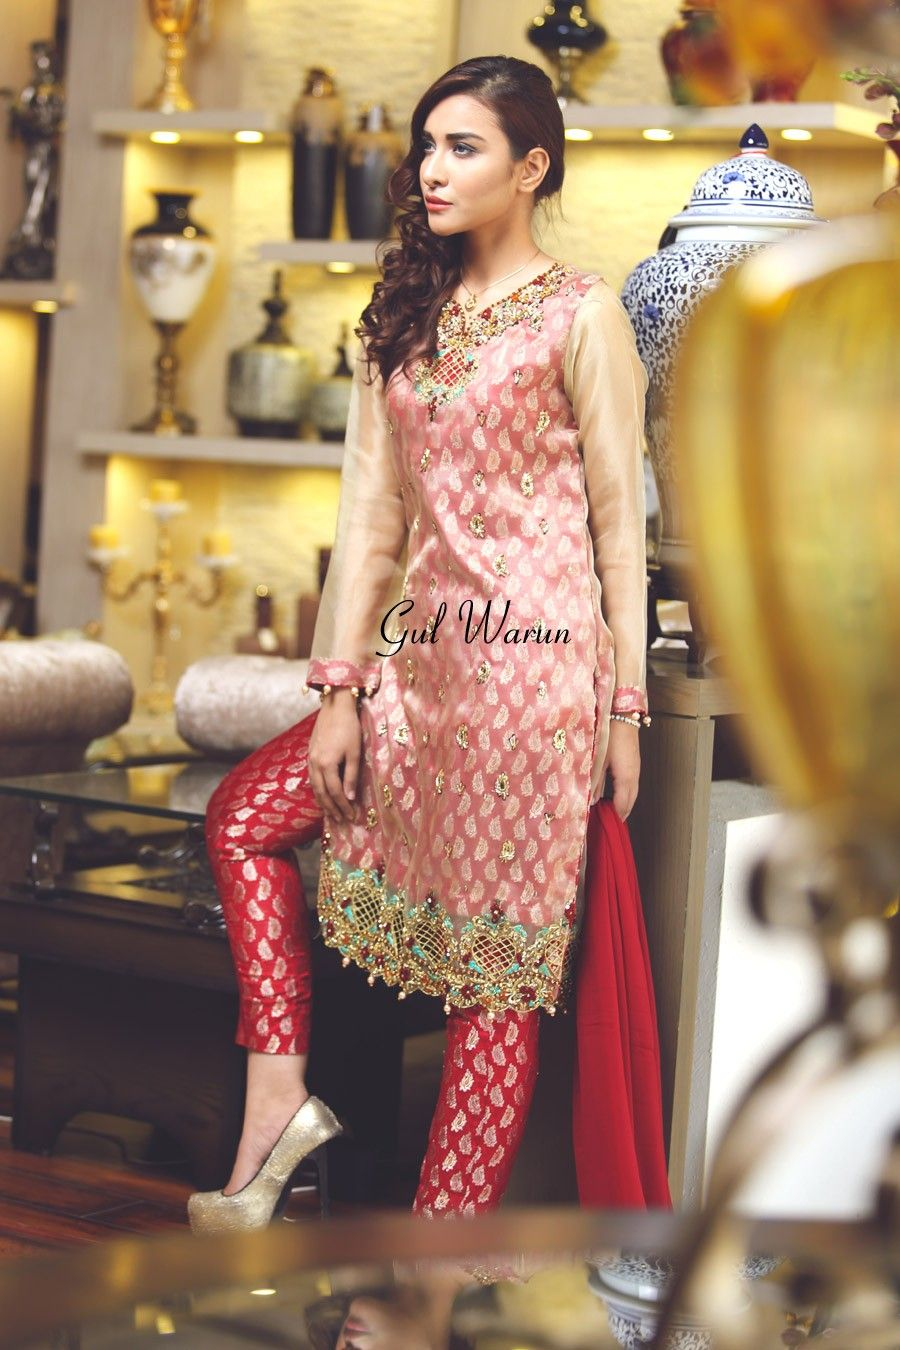 2f54a592553 Pakistani Designer Dresses - Lowest Prices - Cut Work Semi formal Dress by  Gul Warun - Dresses - Latest Pakistani Fashion